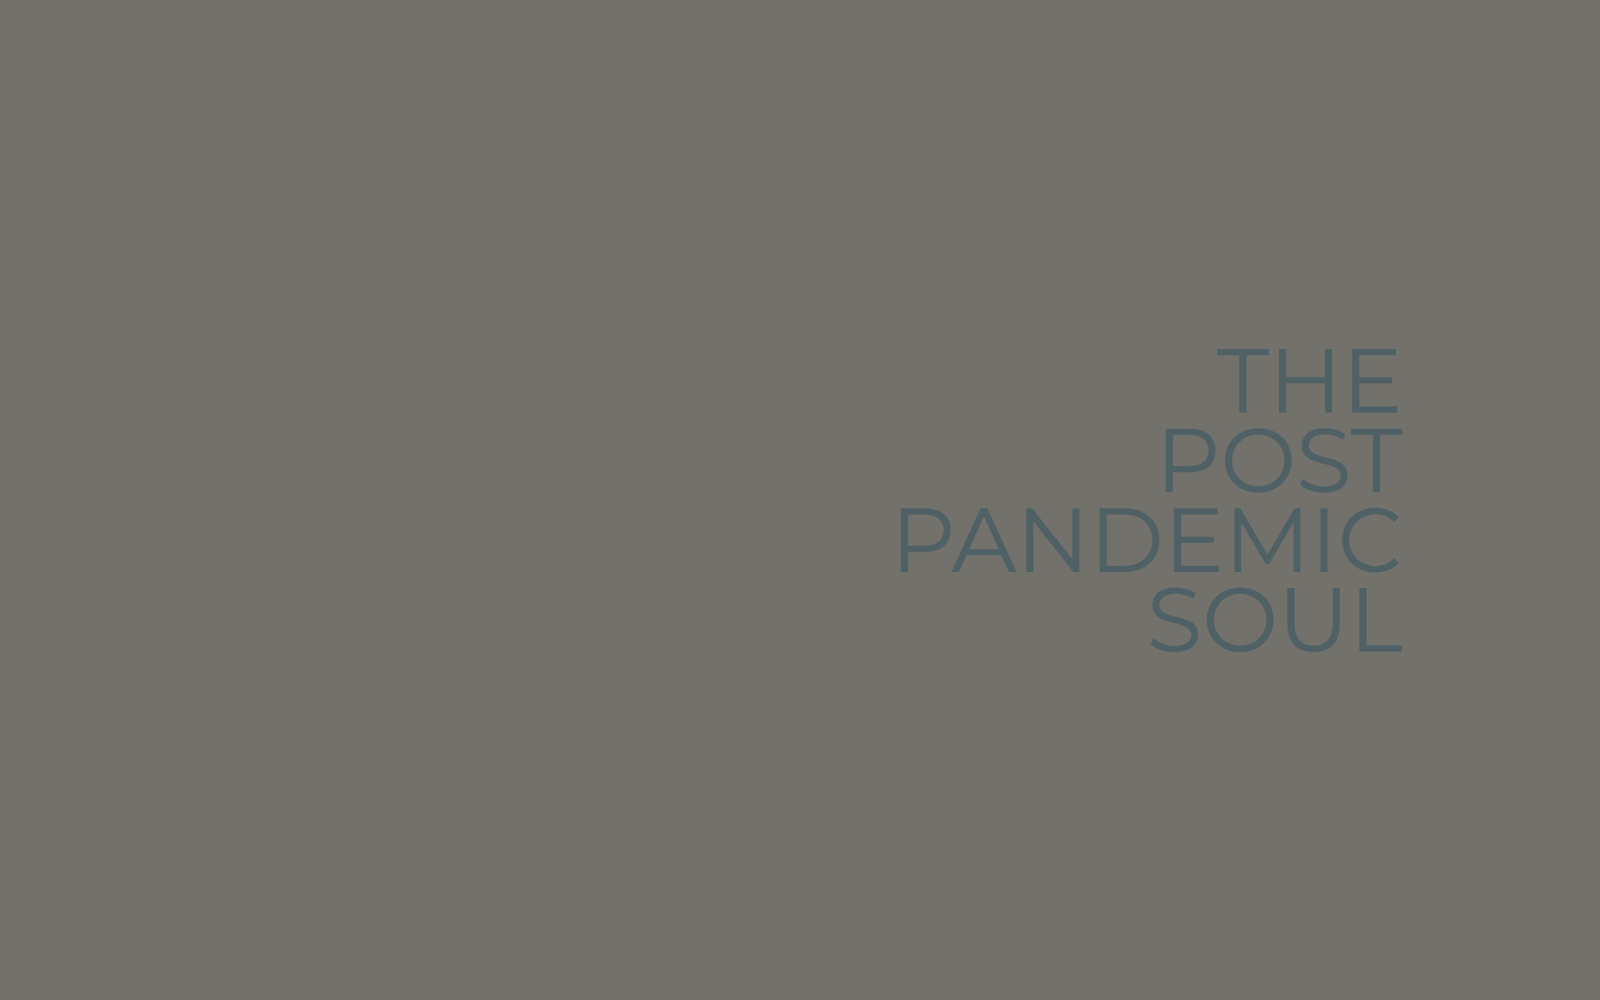 The Post Pandemic Soul image